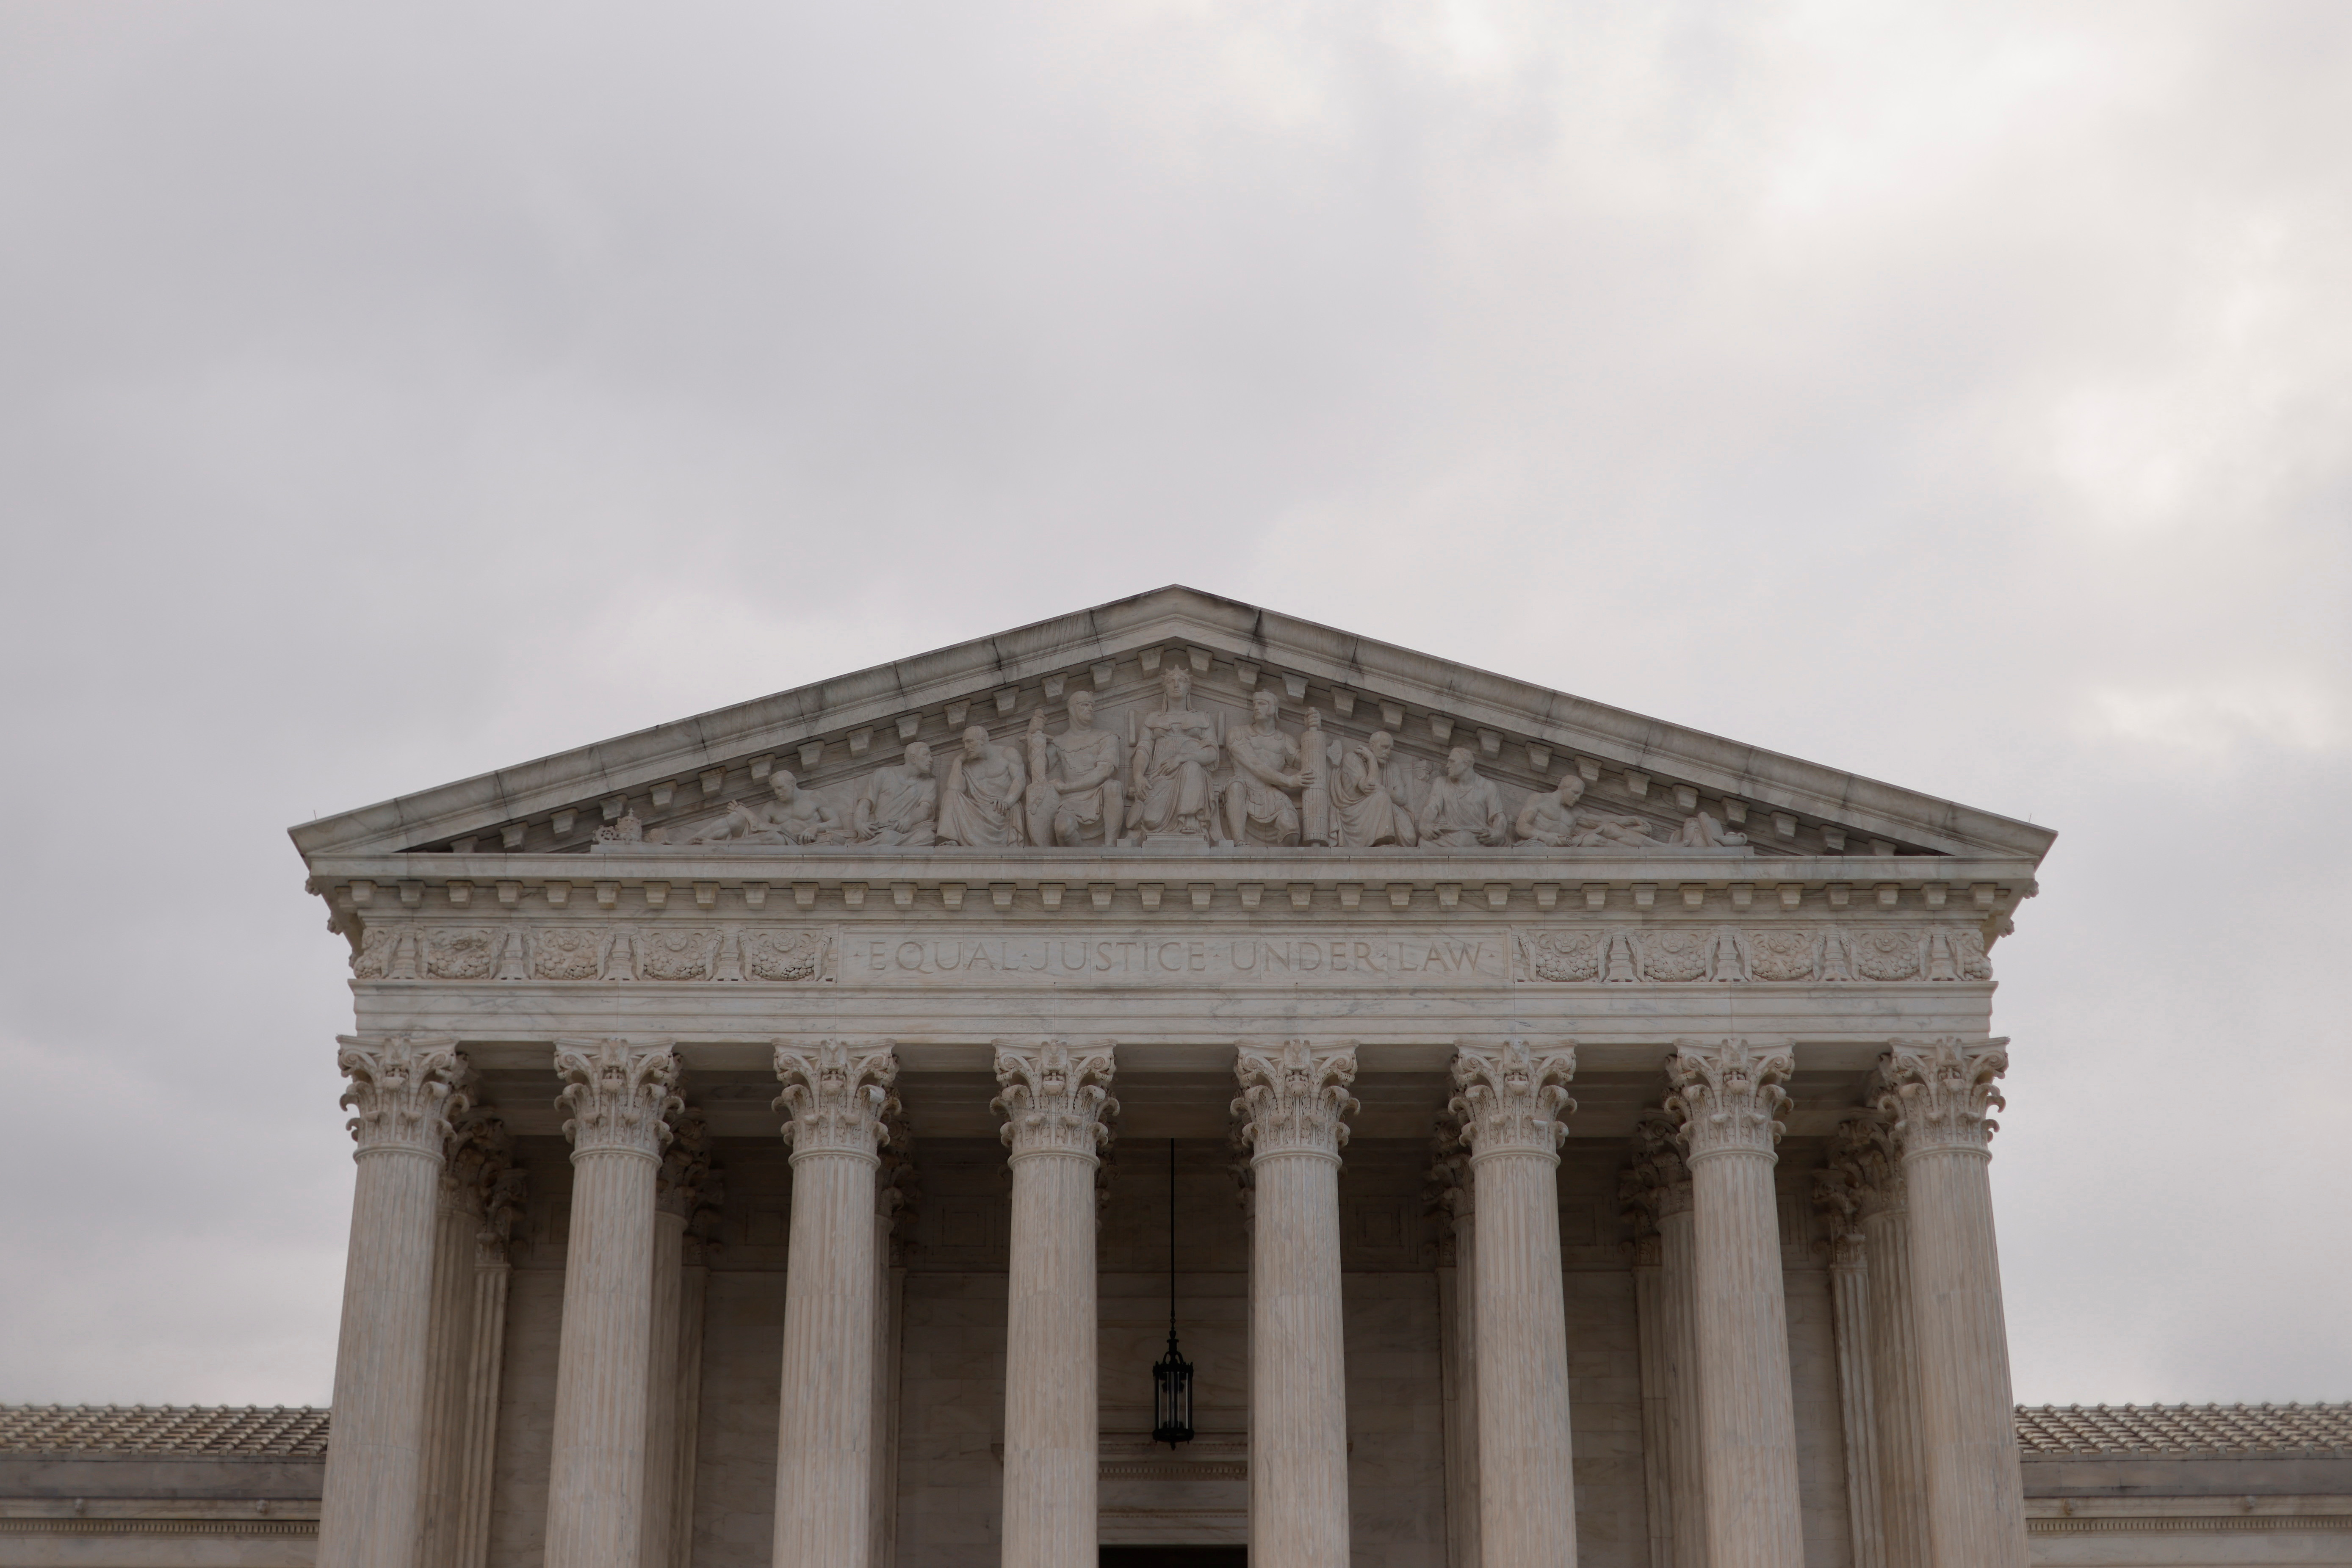 A general view of the U.S. Supreme Court building in Washington. October 13, 2021. REUTERS/Jonathan Ernst